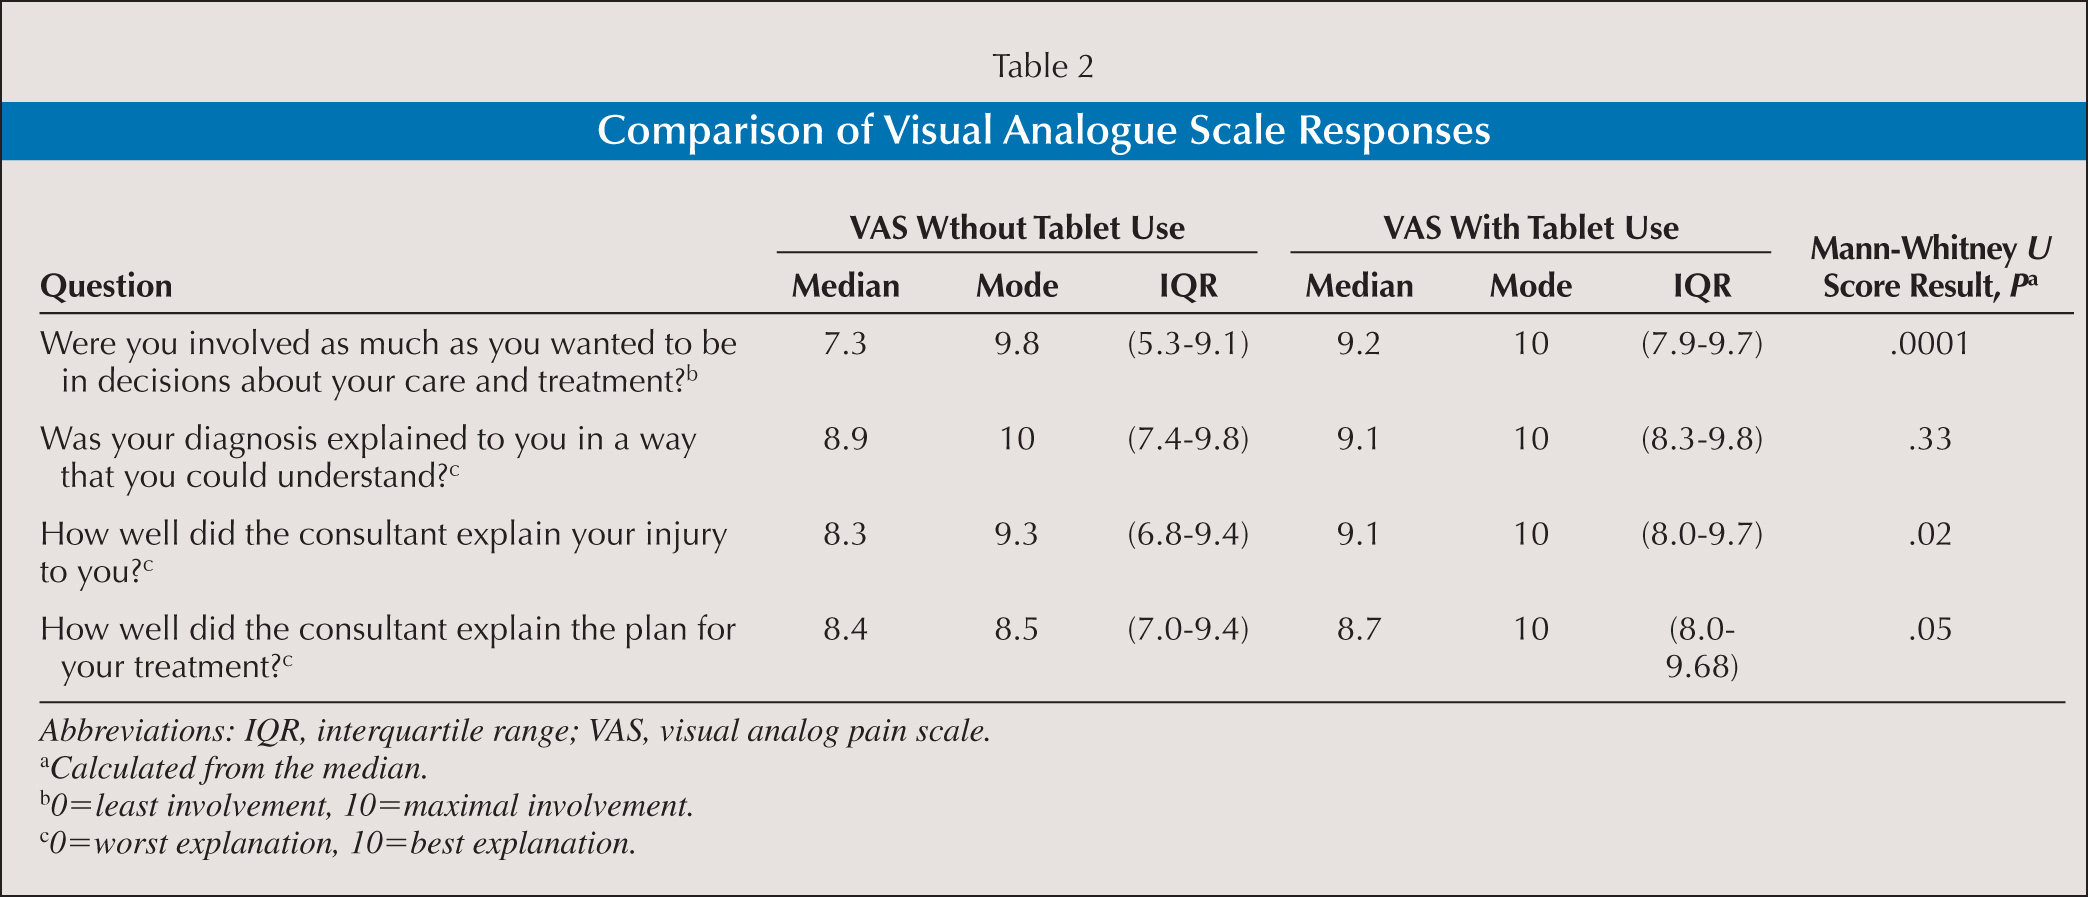 Comparison of Visual Analogue Scale Responses